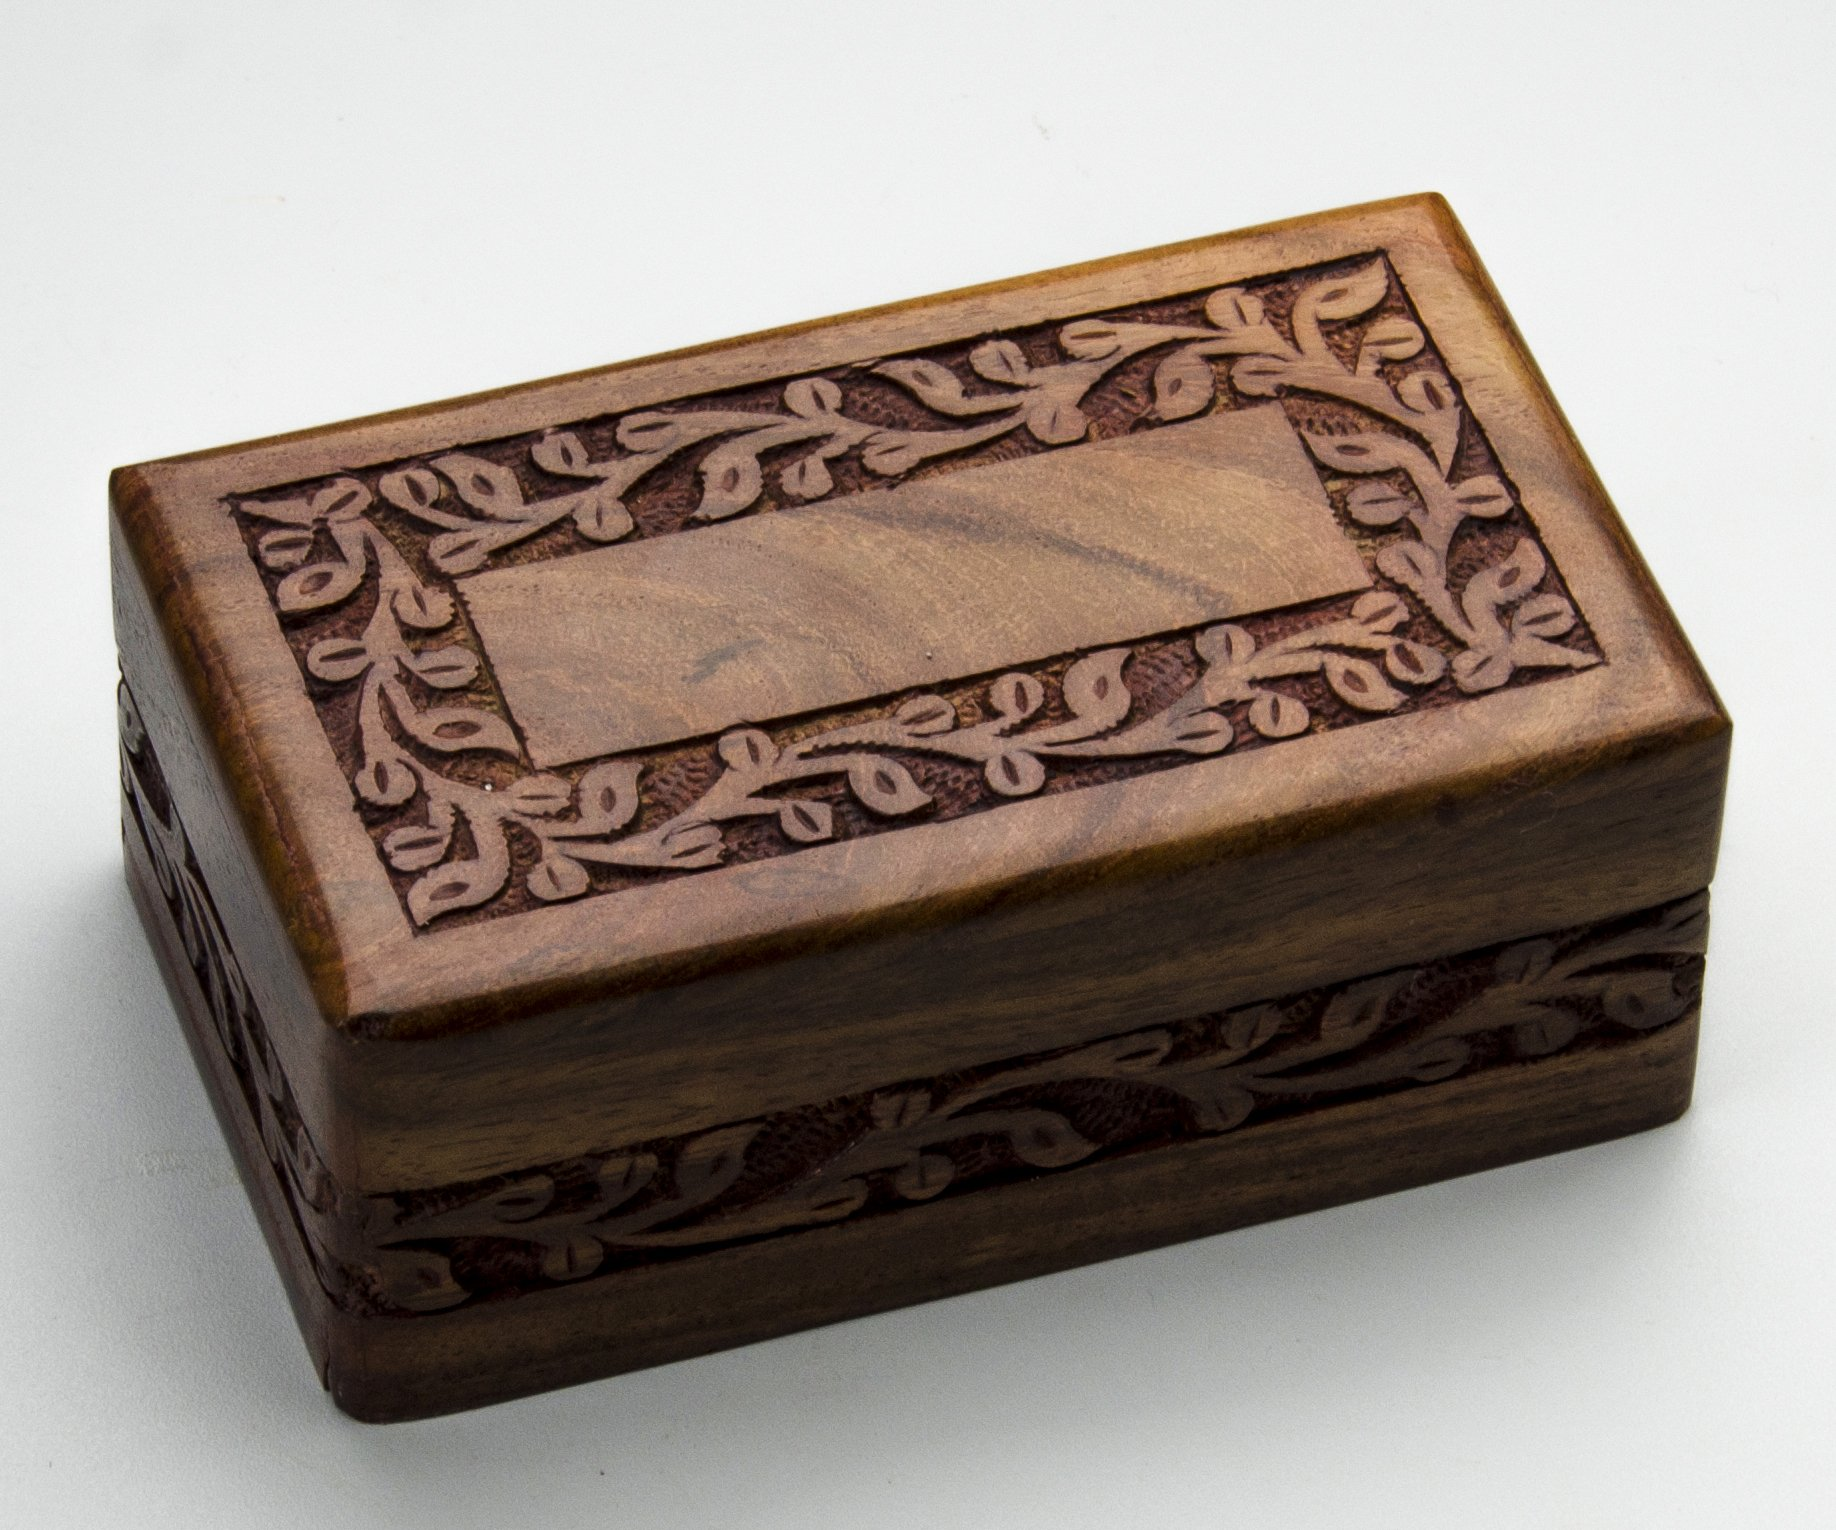 STAR INDIA CRAFT Beautifully Handmade & Handcrafted Borders Engraving Wooden Urns for Human Ashes Adult by Wooden Cremation Urns for Ashes Engraving, Wooden Box (Traditional, Medium - 78 Cu/In)